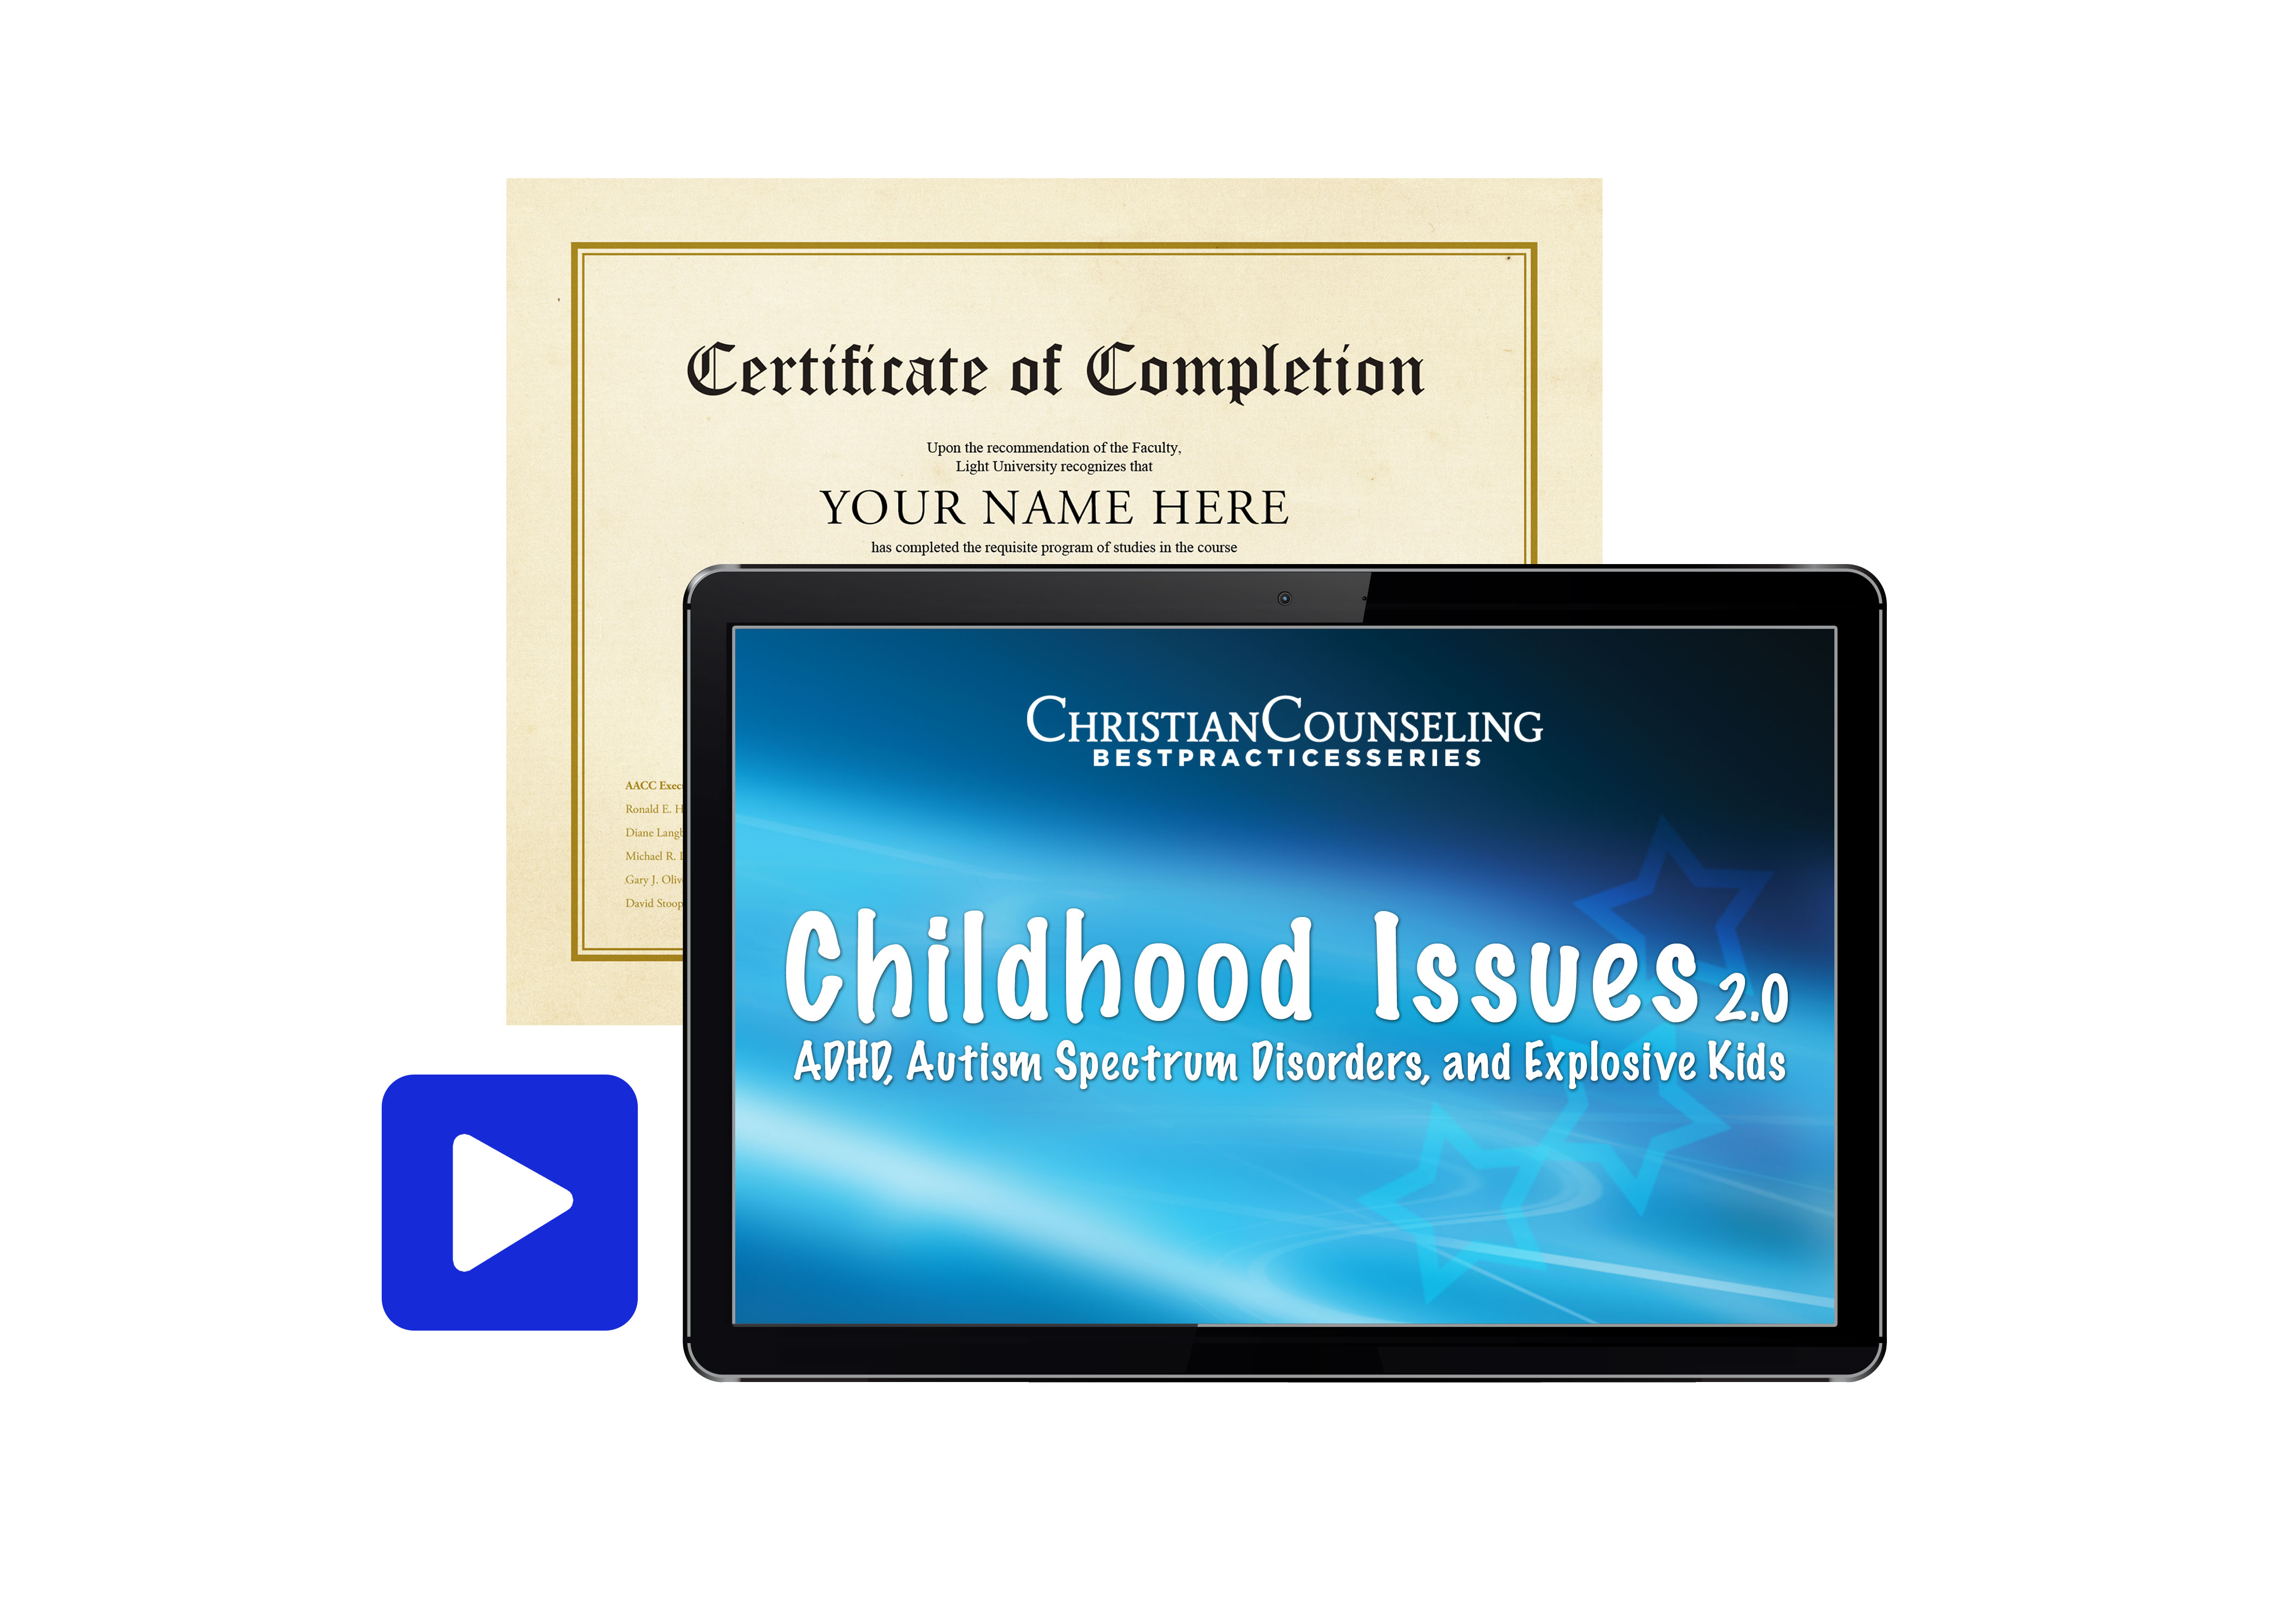 Childhood Issues and Strategies 2.0